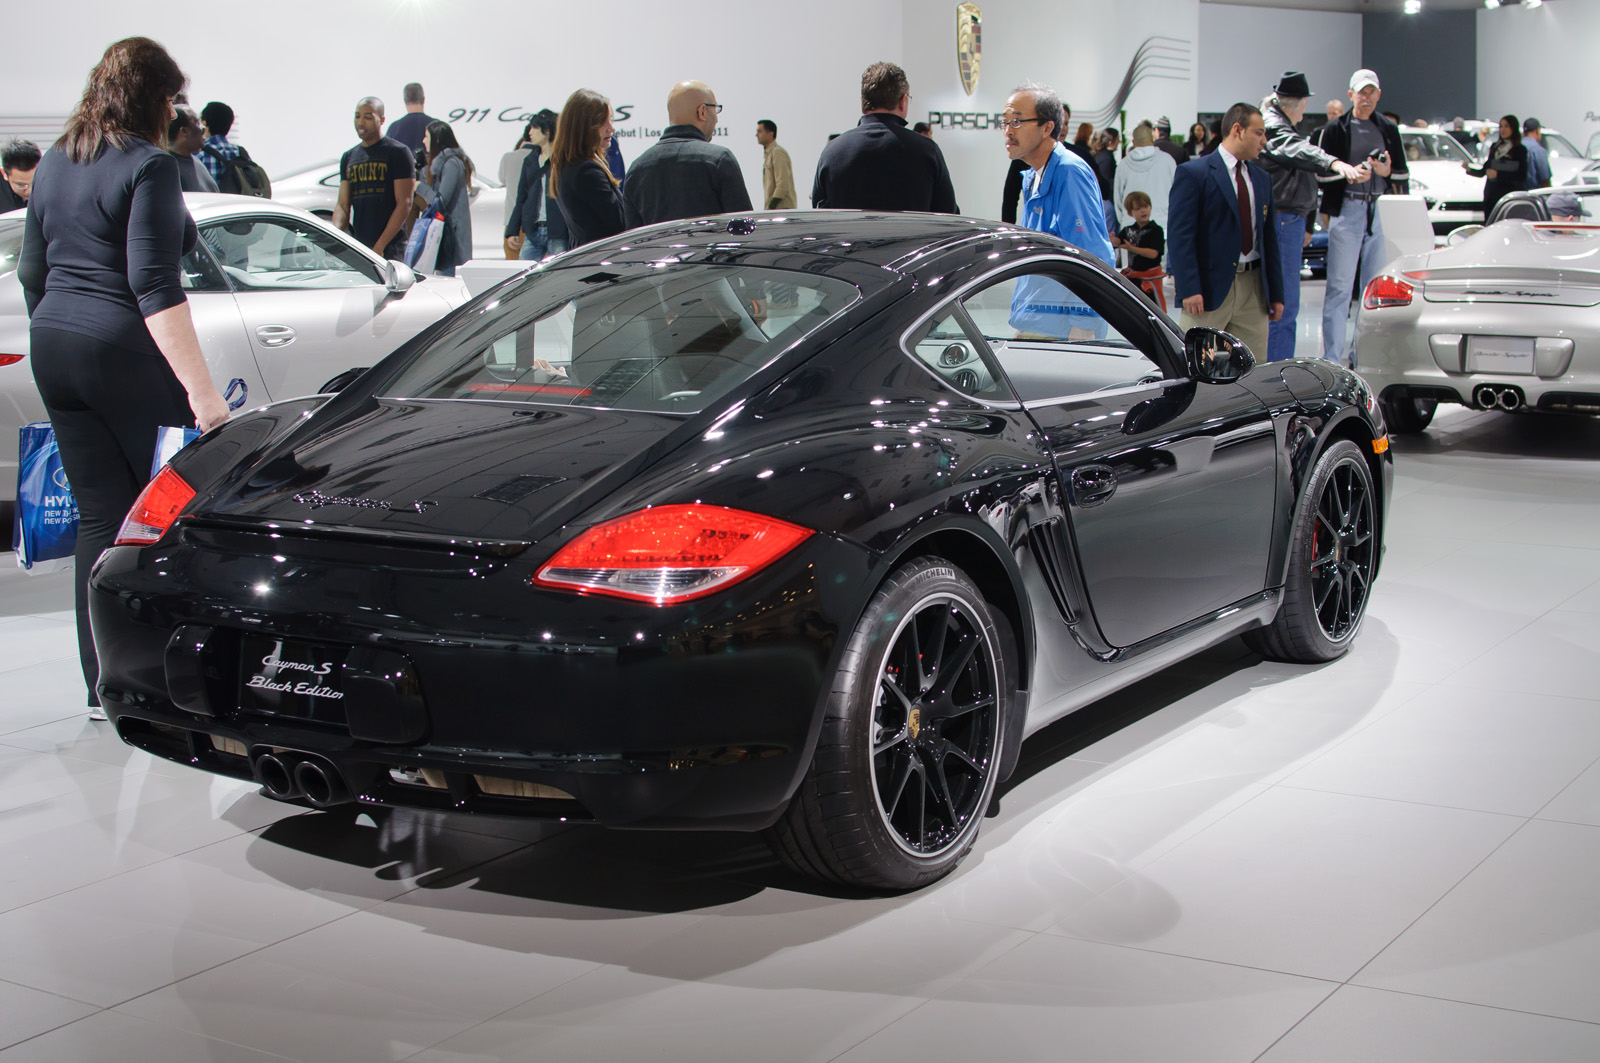 2016 Porsche Cayman S Review >> File:Porsche Cayman S, Black Edition (US) - Flickr - skinnylawyer.jpg - Wikimedia Commons